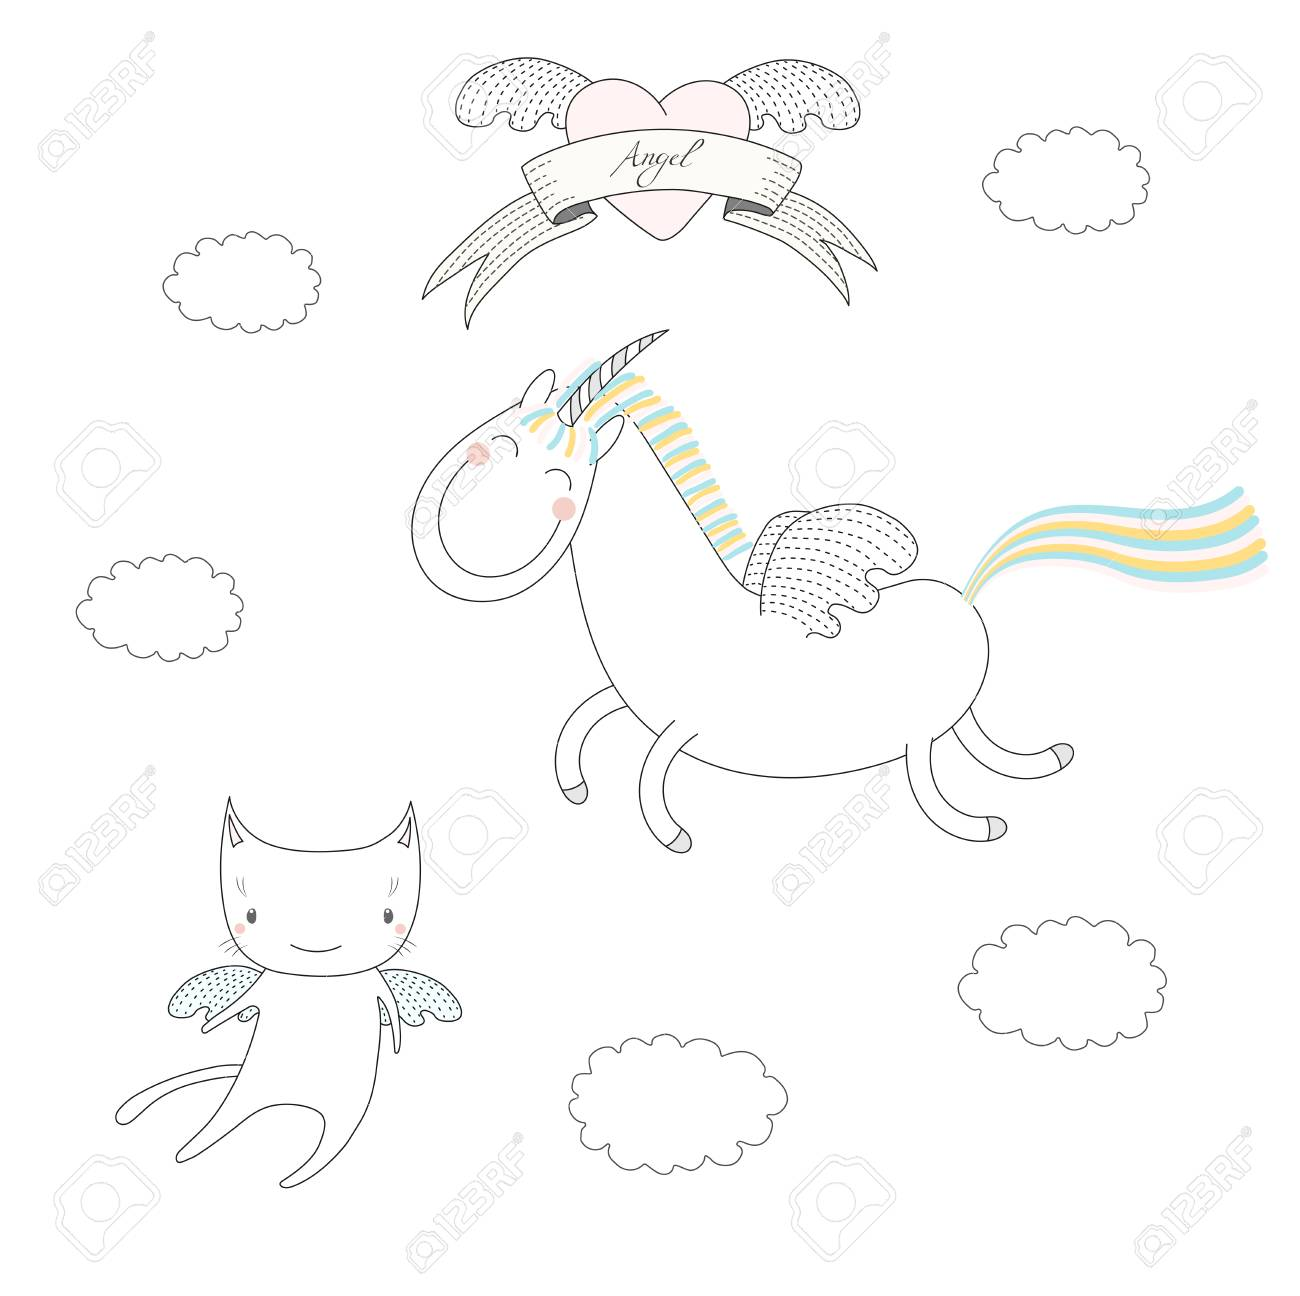 hand drawn vector illustration of a cute unicorn with wings and What Cat hand drawn vector illustration of a cute unicorn with wings and angel cat flying among